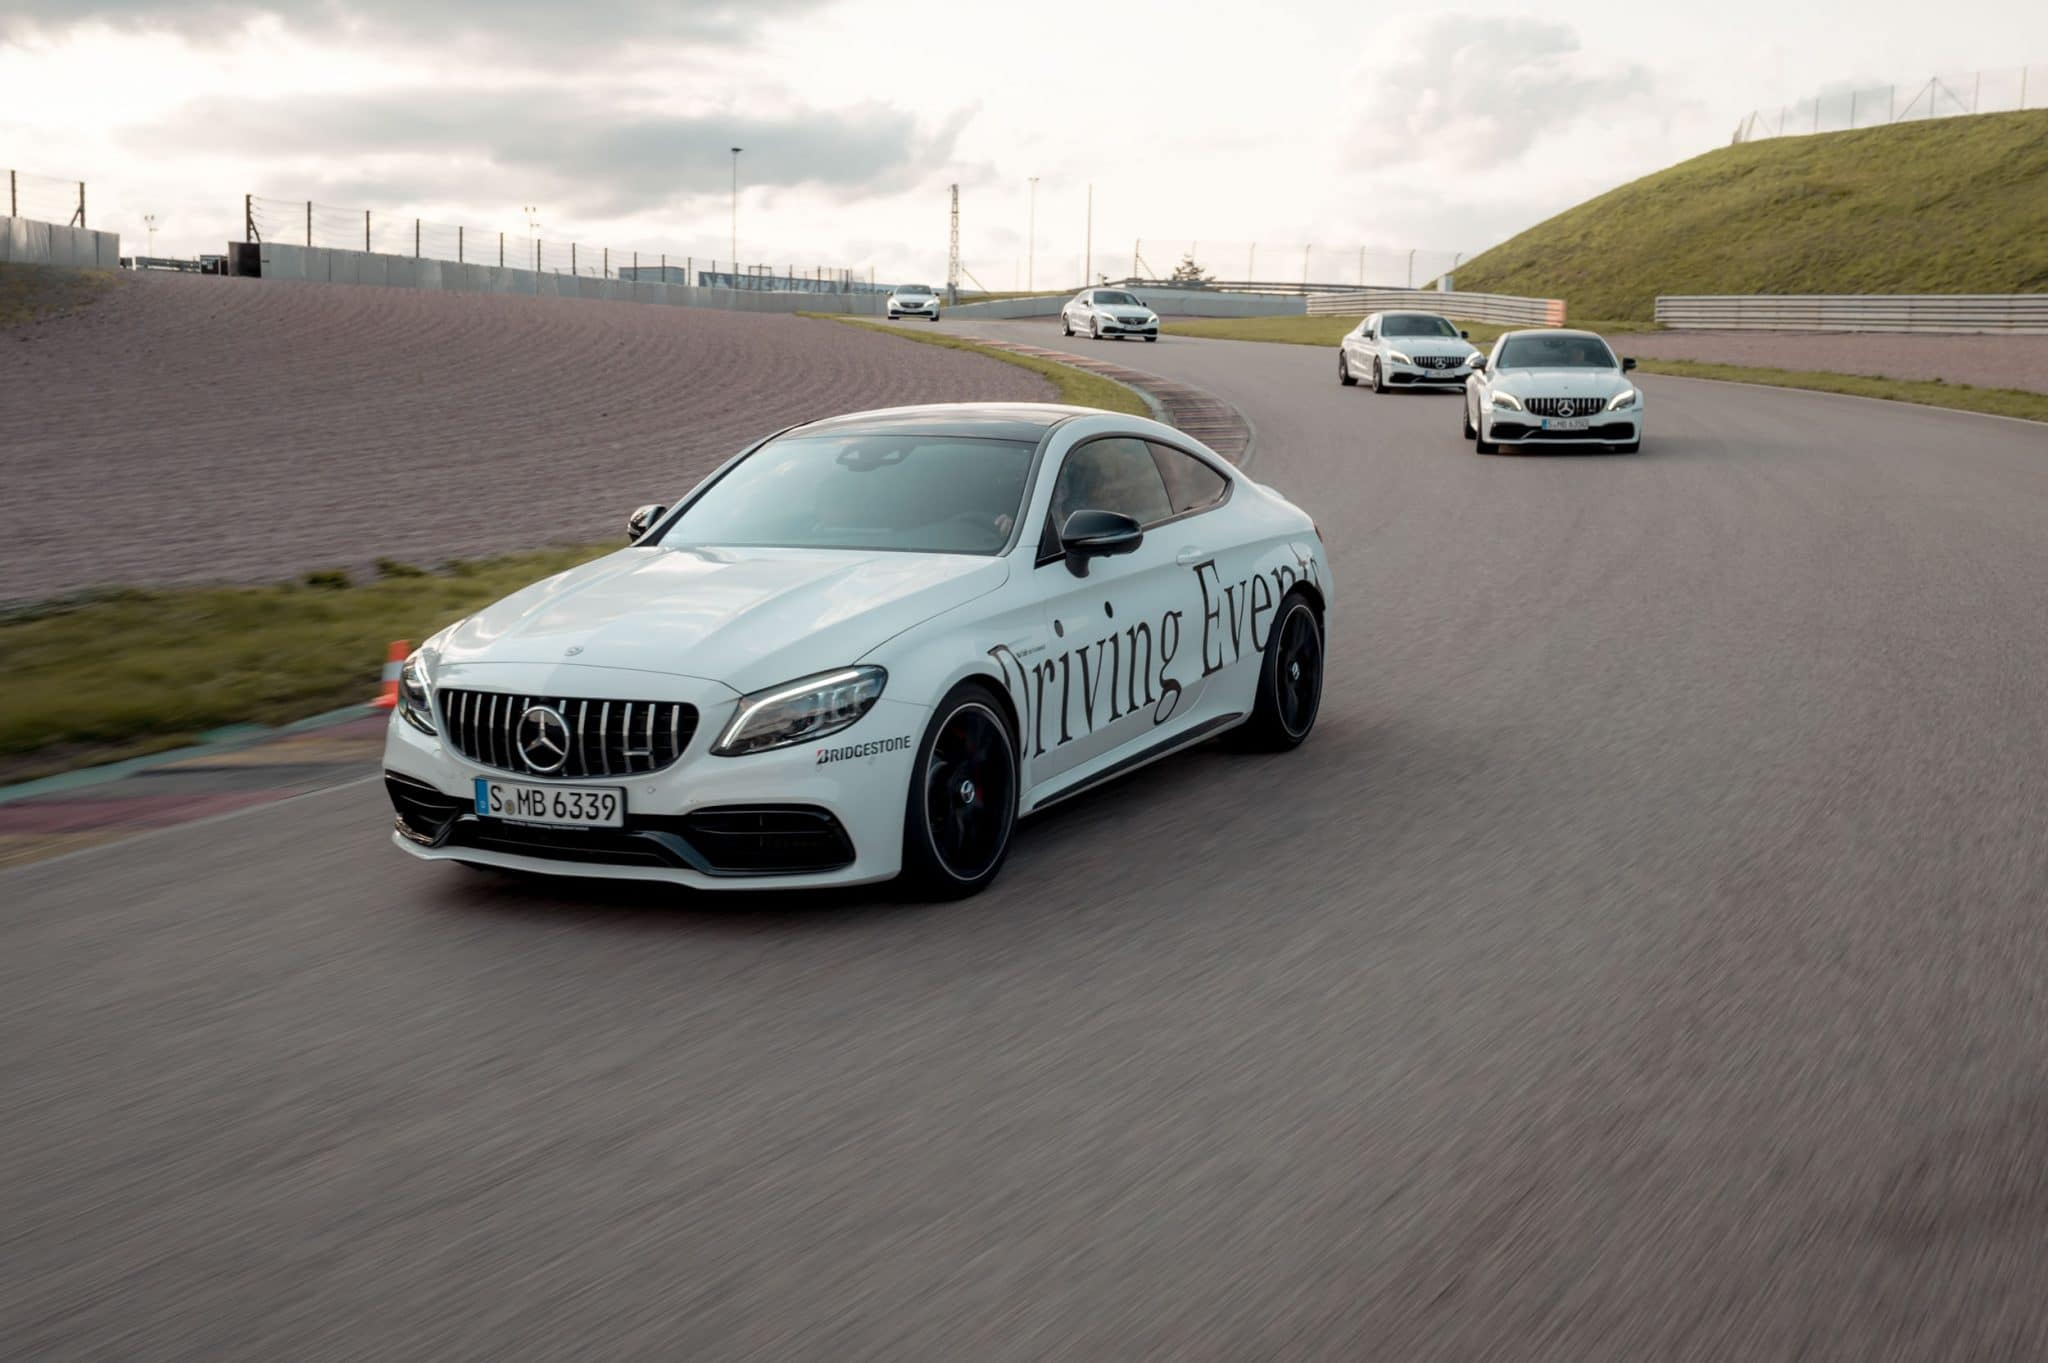 Mercedes Benz Driving Events Sachsenring 11. September 2020 679 scaled |